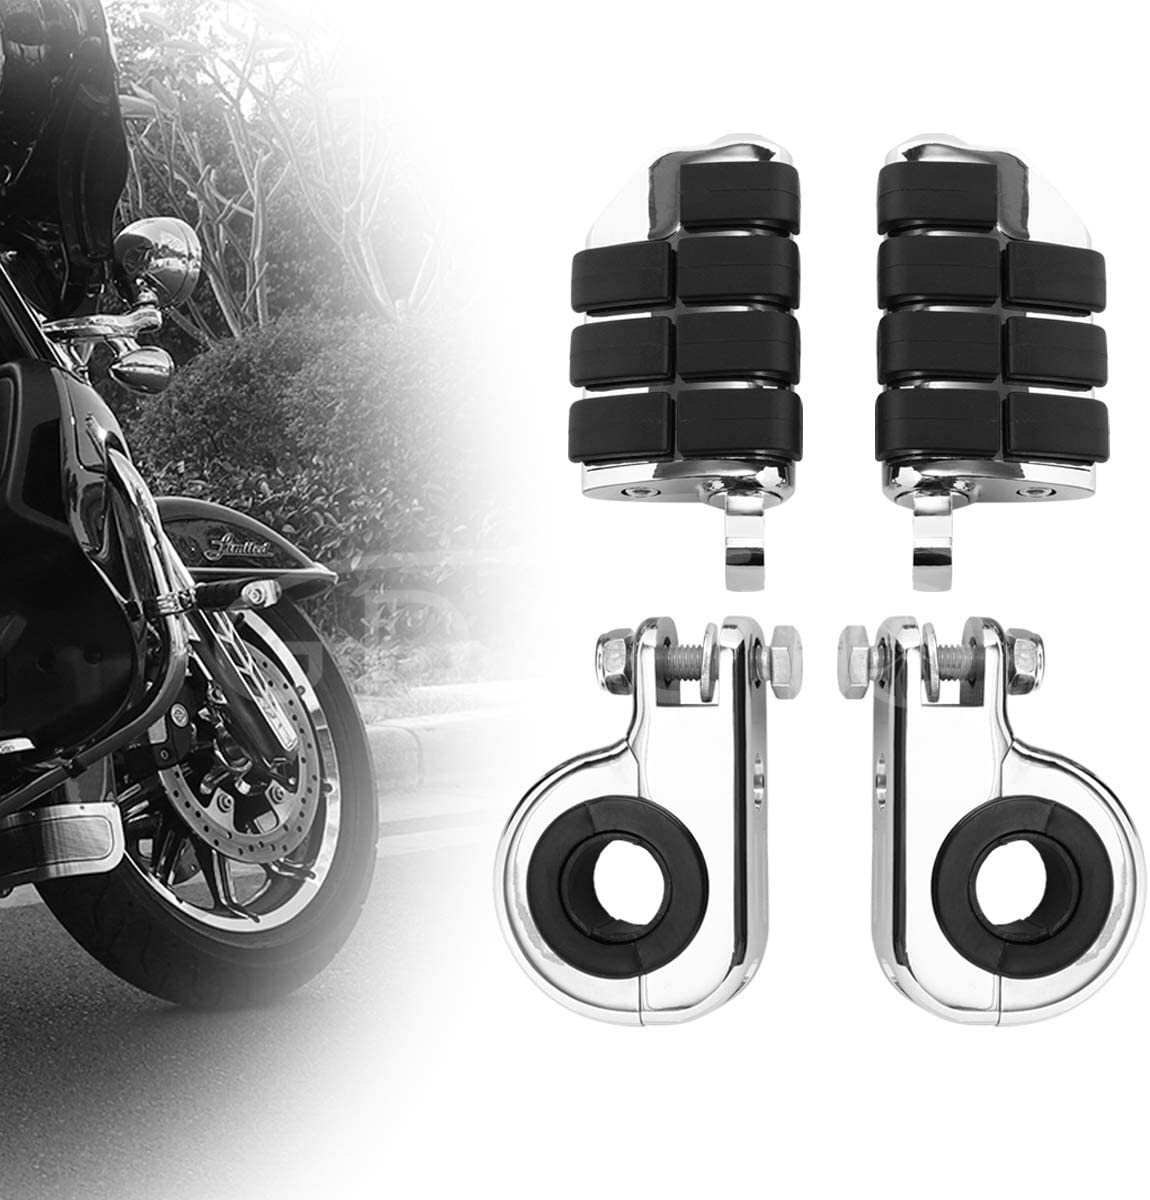 GDAUTO Motorcycle Footpegs Foot Highway Popular product Tulsa Mall Pegs(ChromeïRest